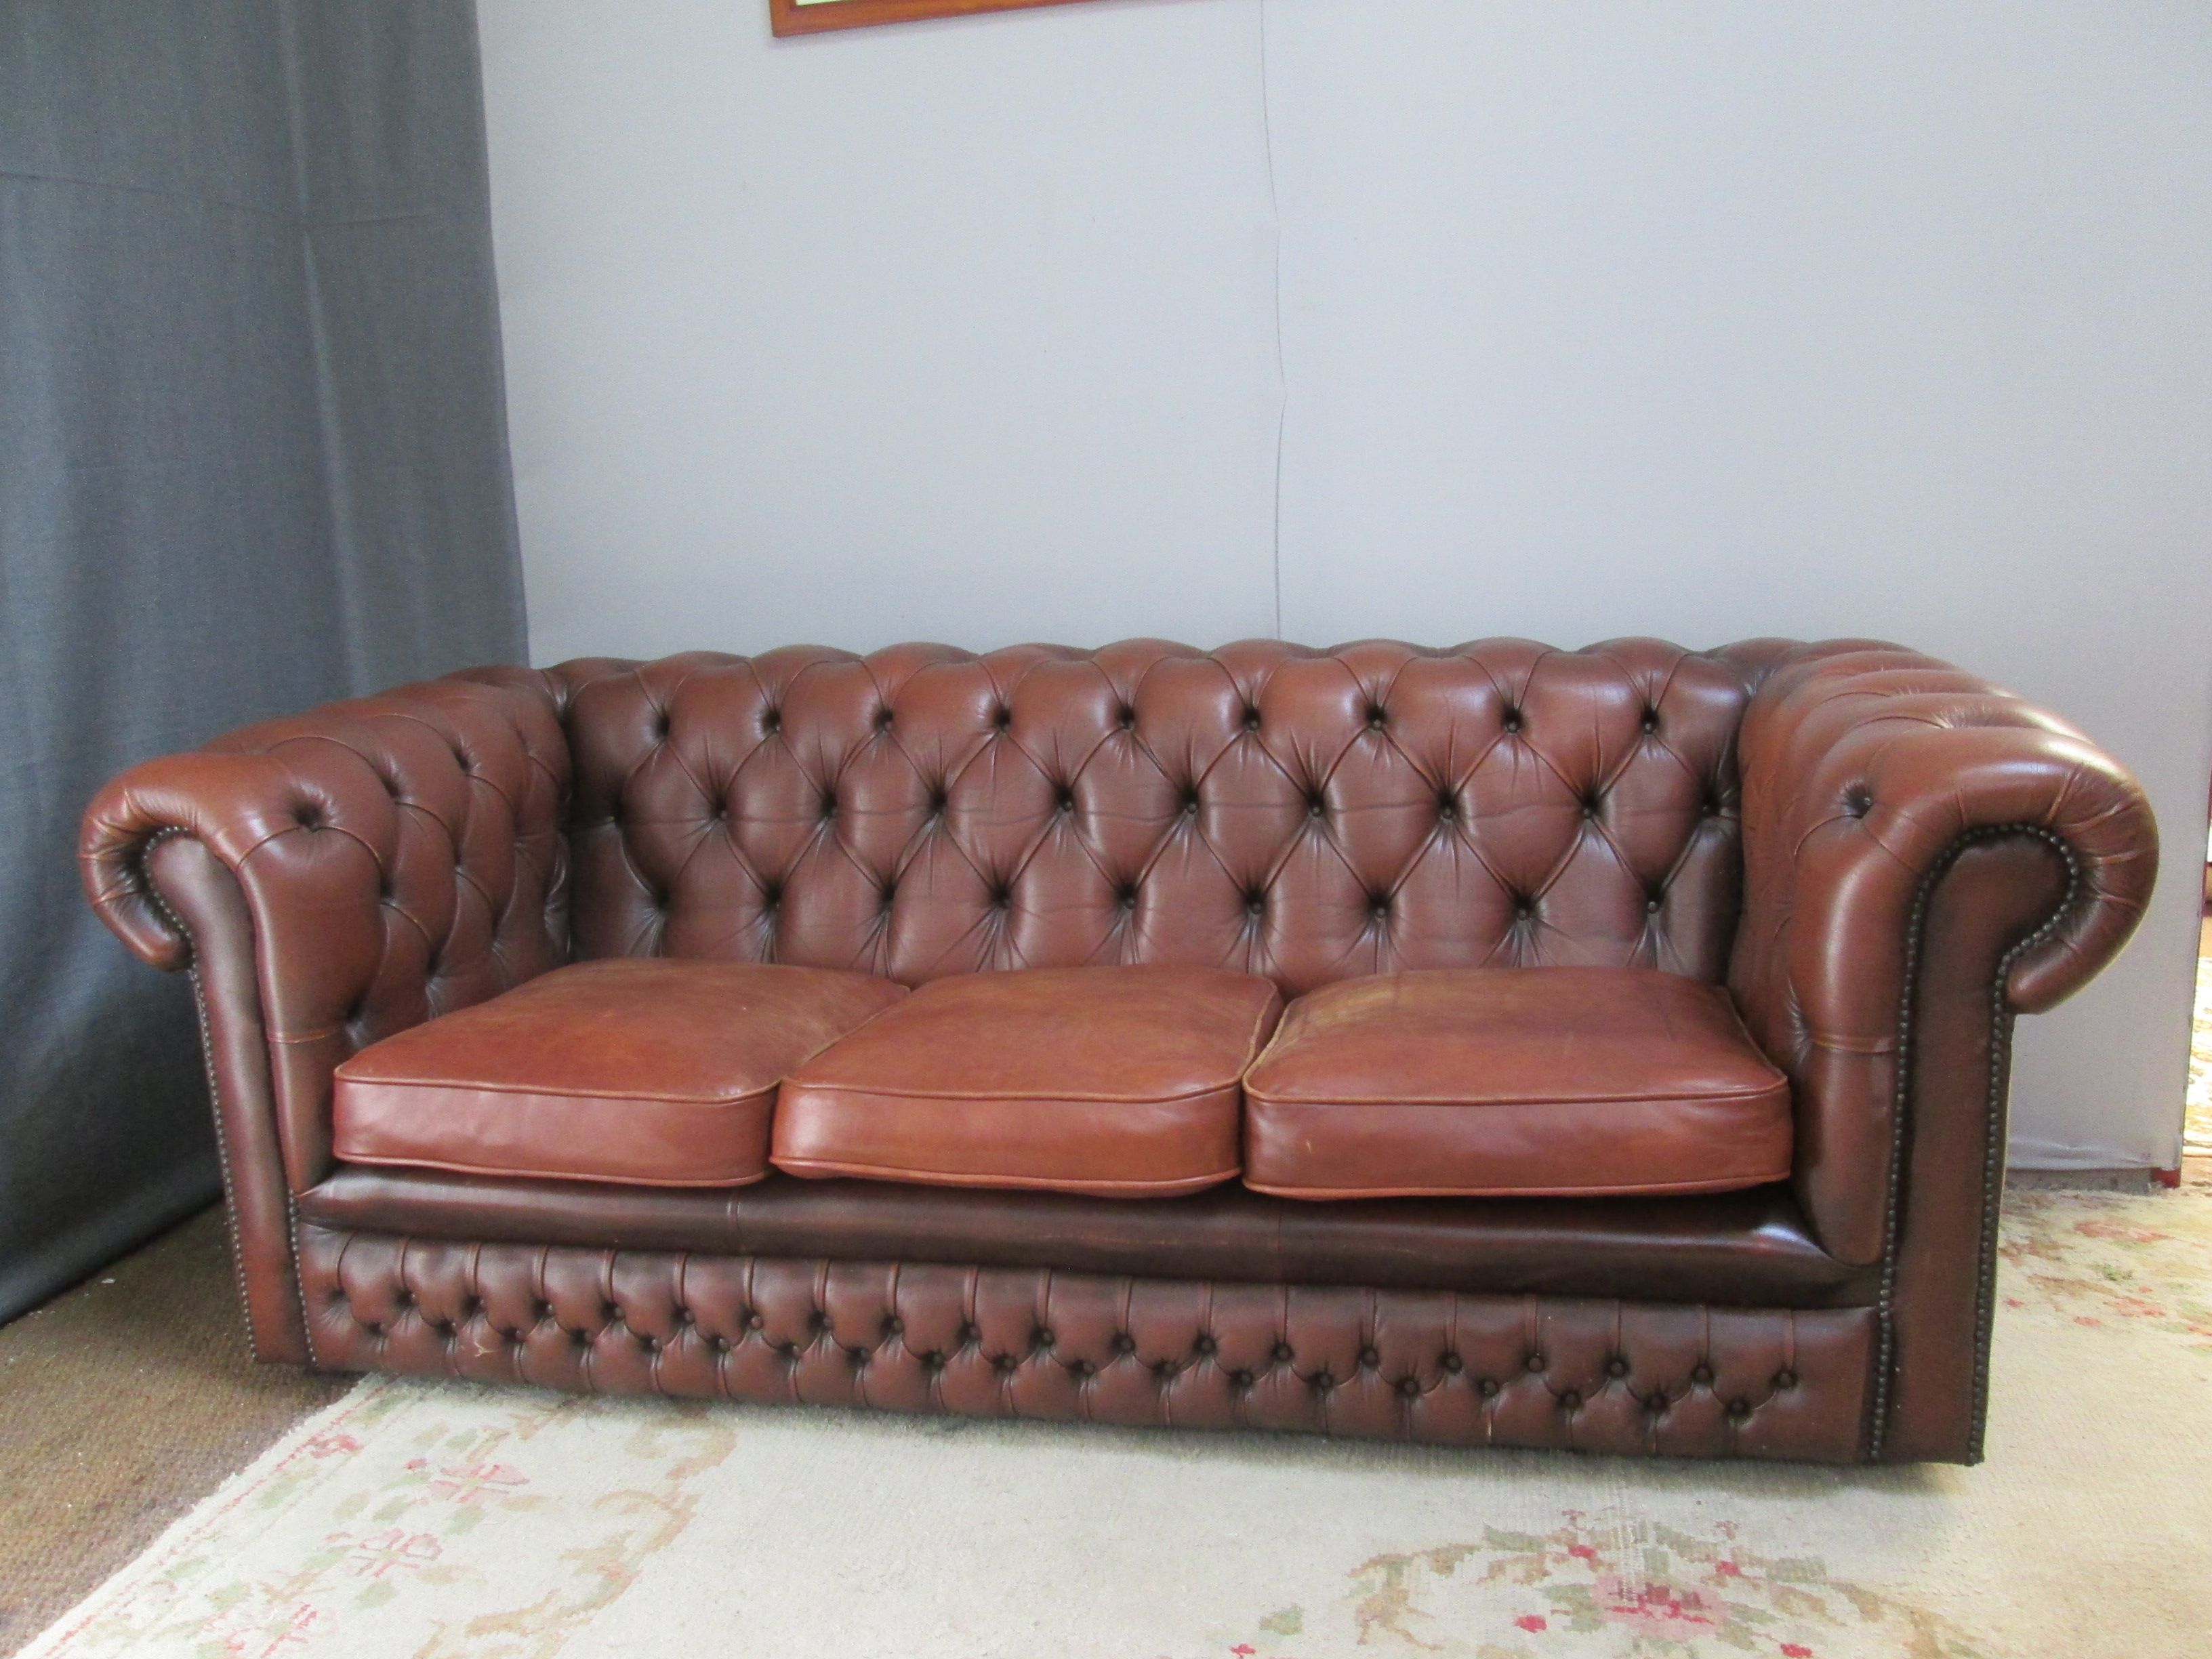 Vintage Chesterfield Sofa In Brown Leather 1990